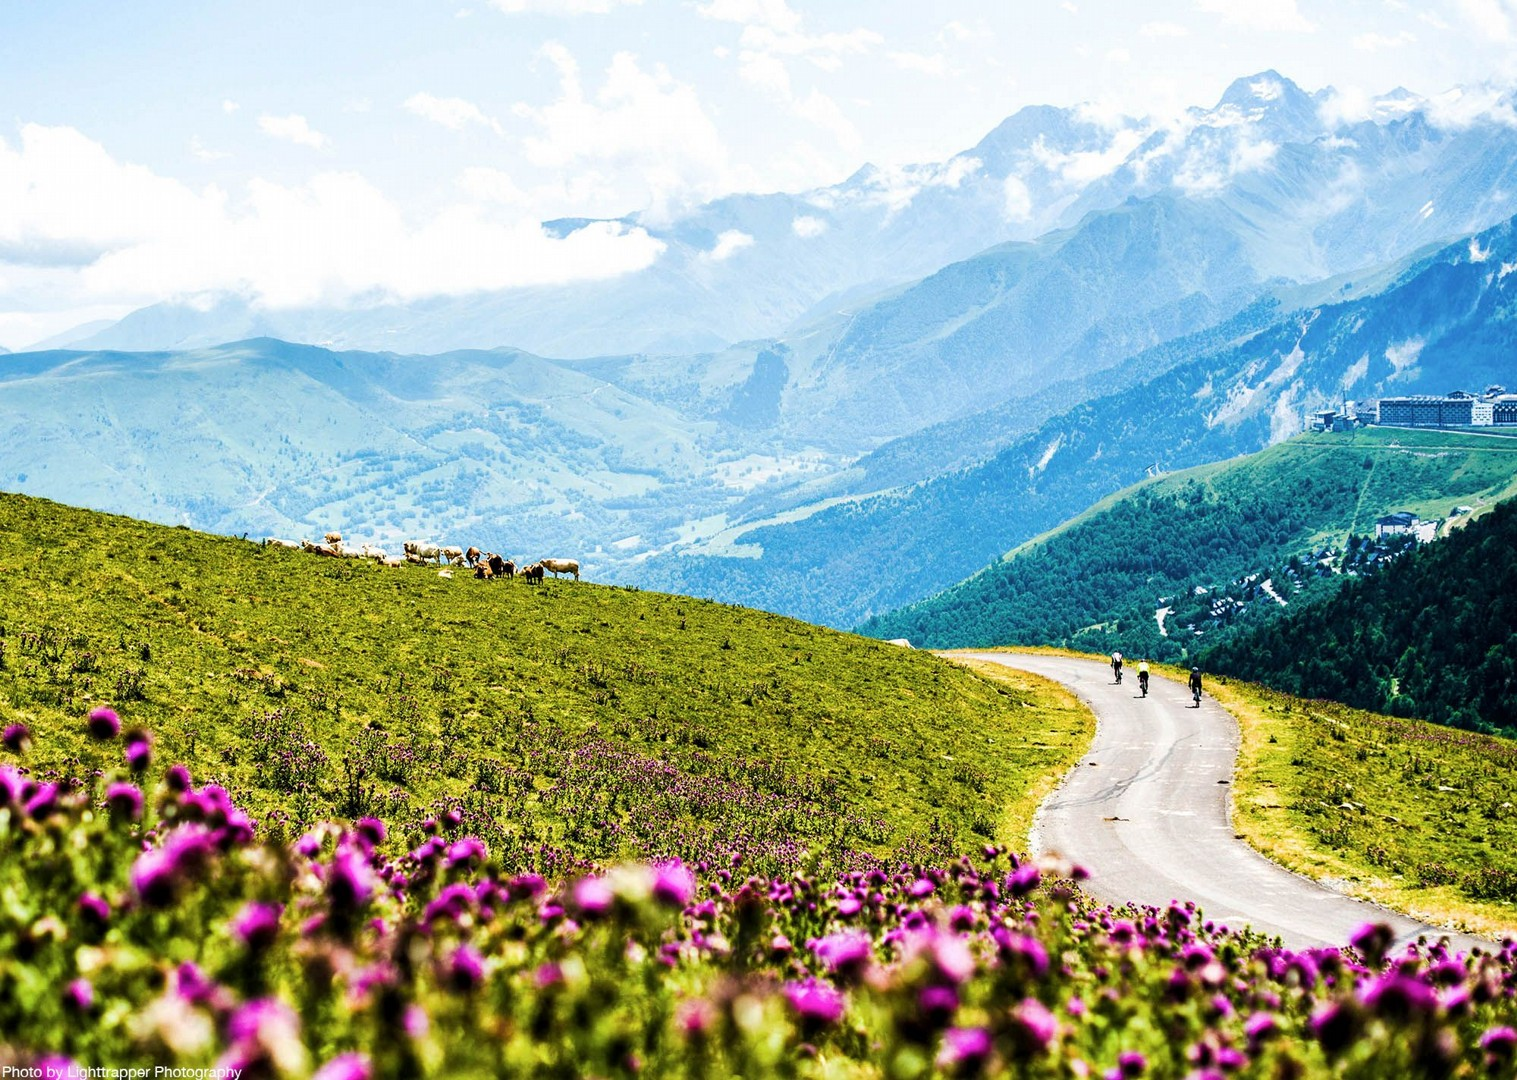 saddle-skedaddle-holidays-in-france-pyrenees-fitness-week-trip.jpg - France - Pyrenees Fitness Week (Grade 2-3) - Guided Road Cycling Holiday - Road Cycling